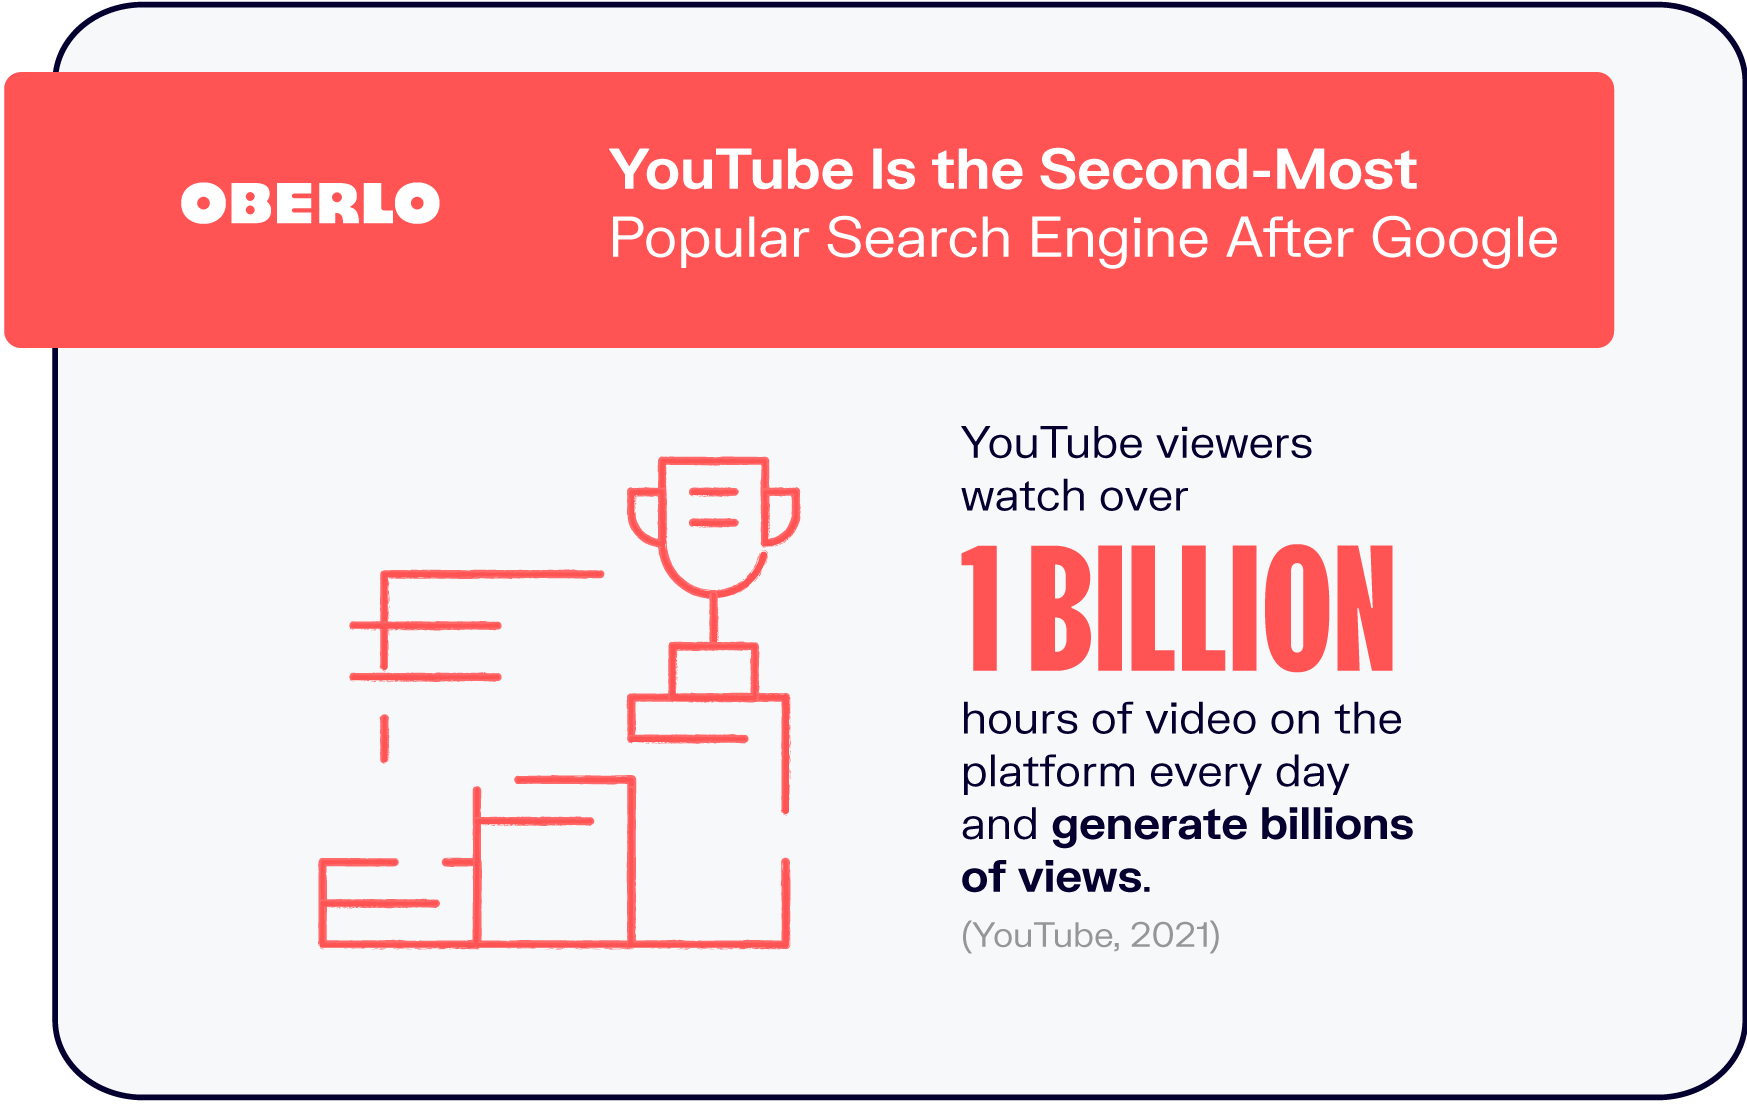 YouTube Is the Second-Most Popular Search Engine After Google